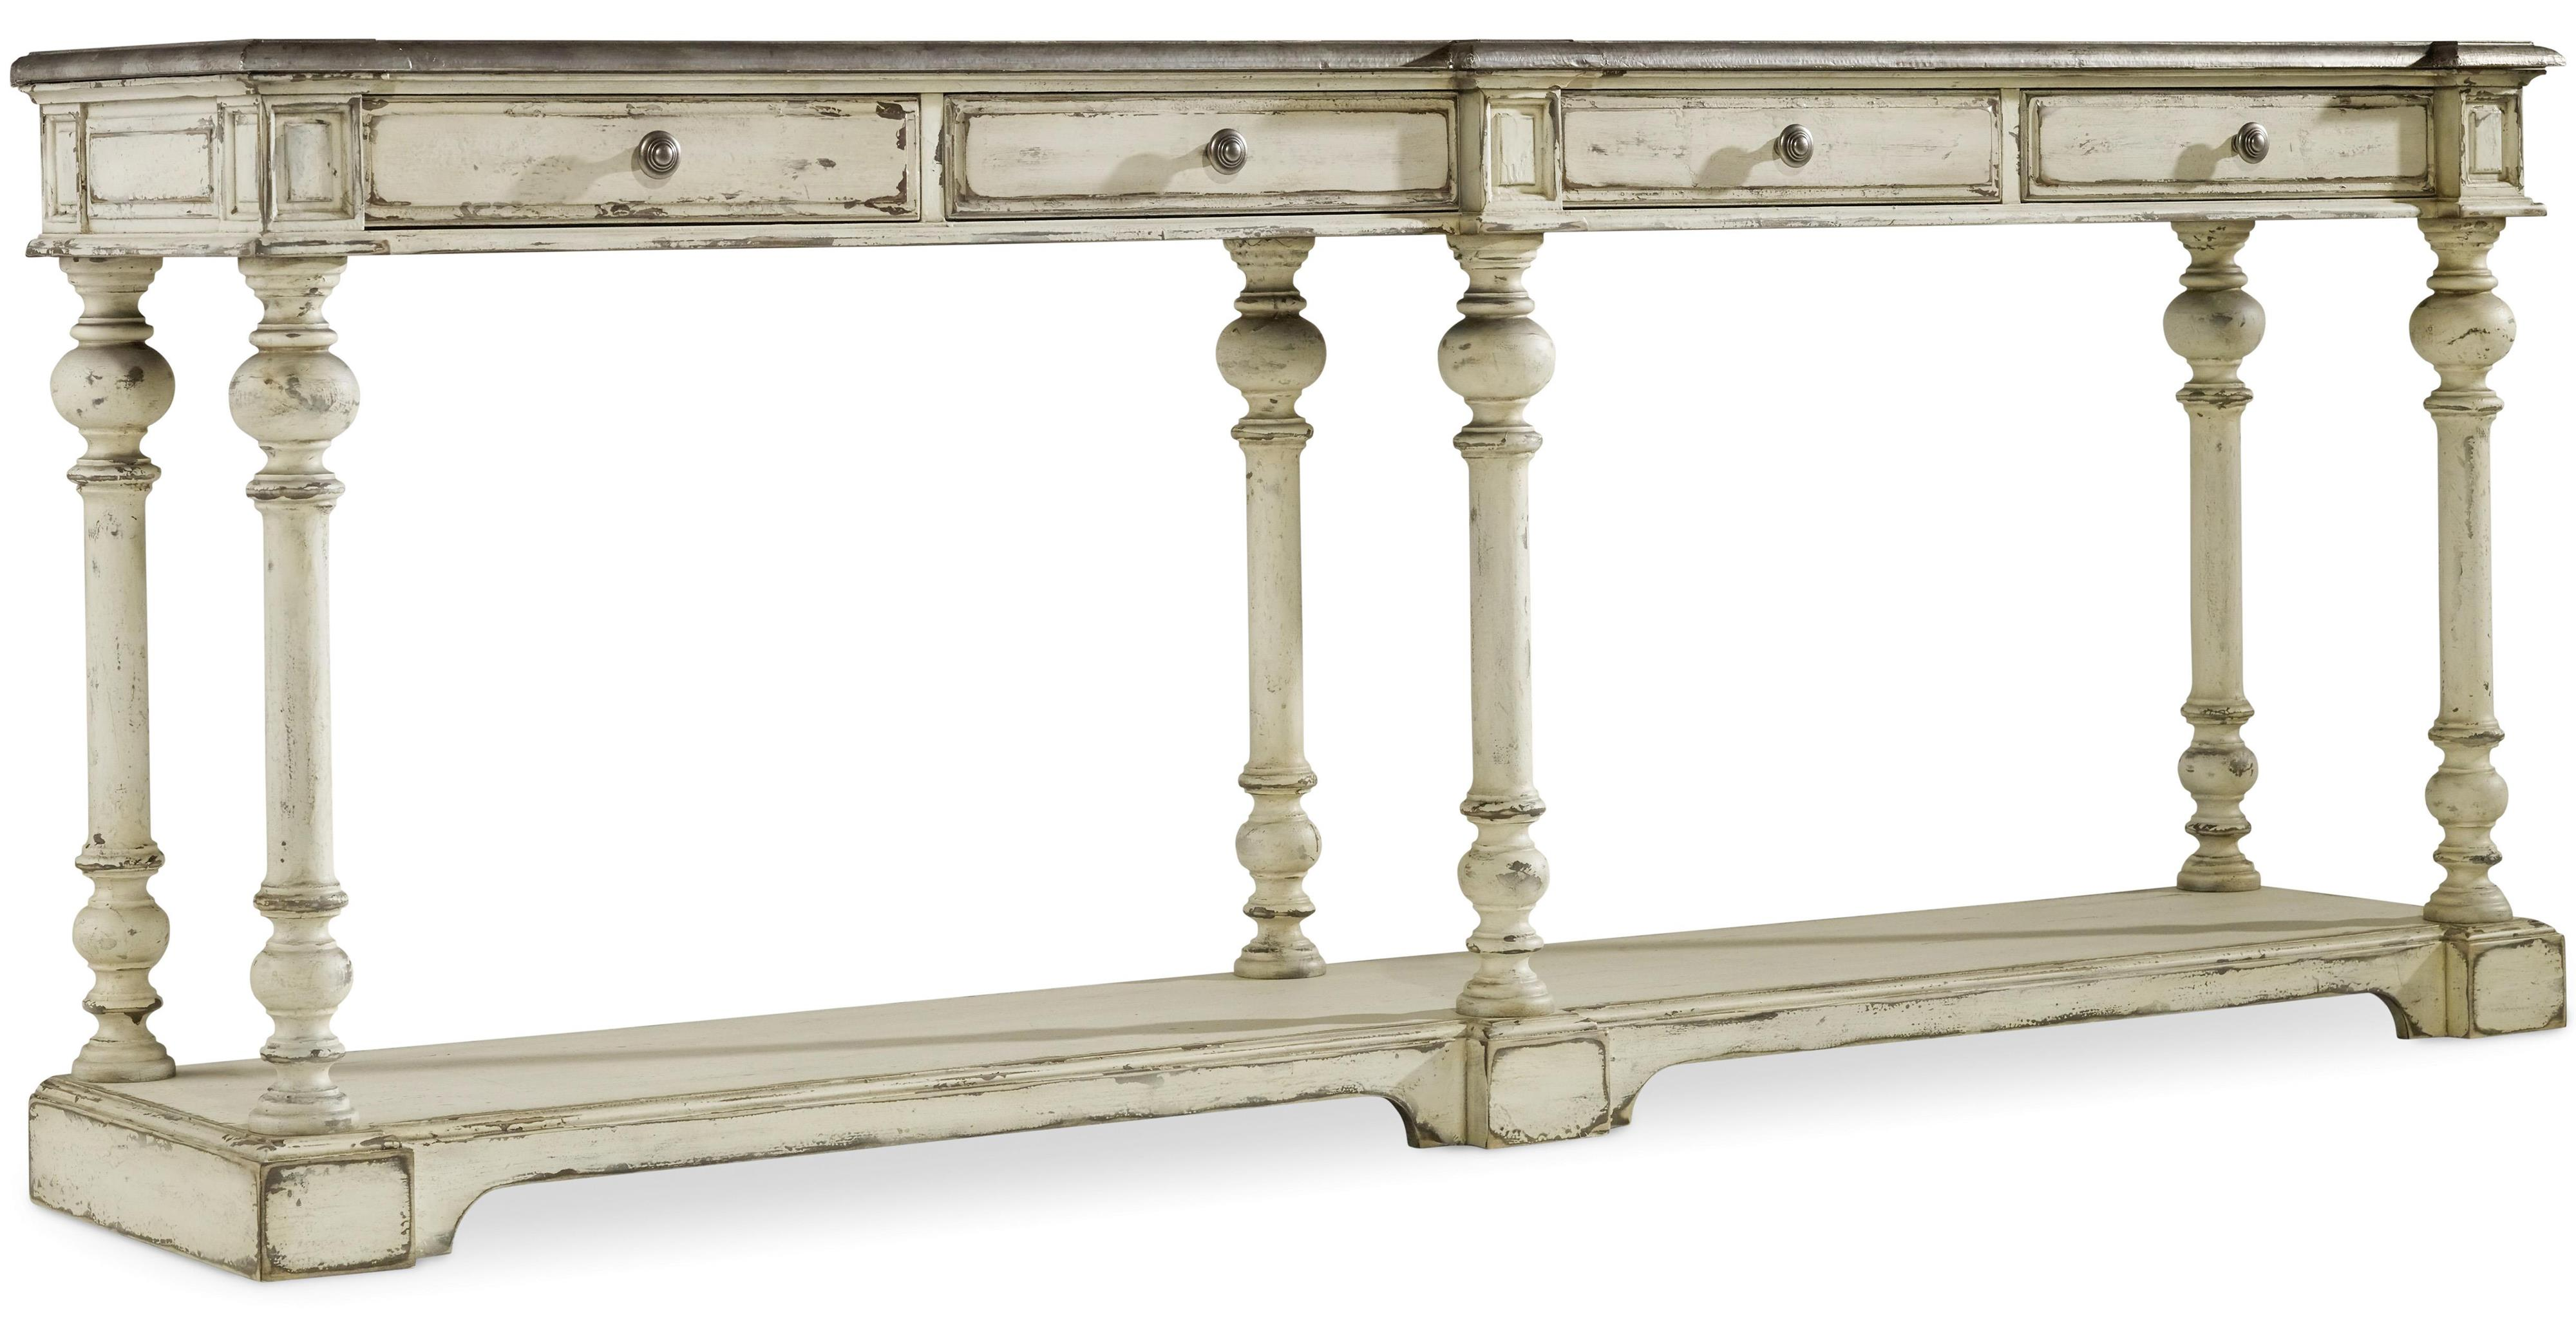 Hooker Furniture Sanctuary Hall Console Table   Item Number: 5403 85001